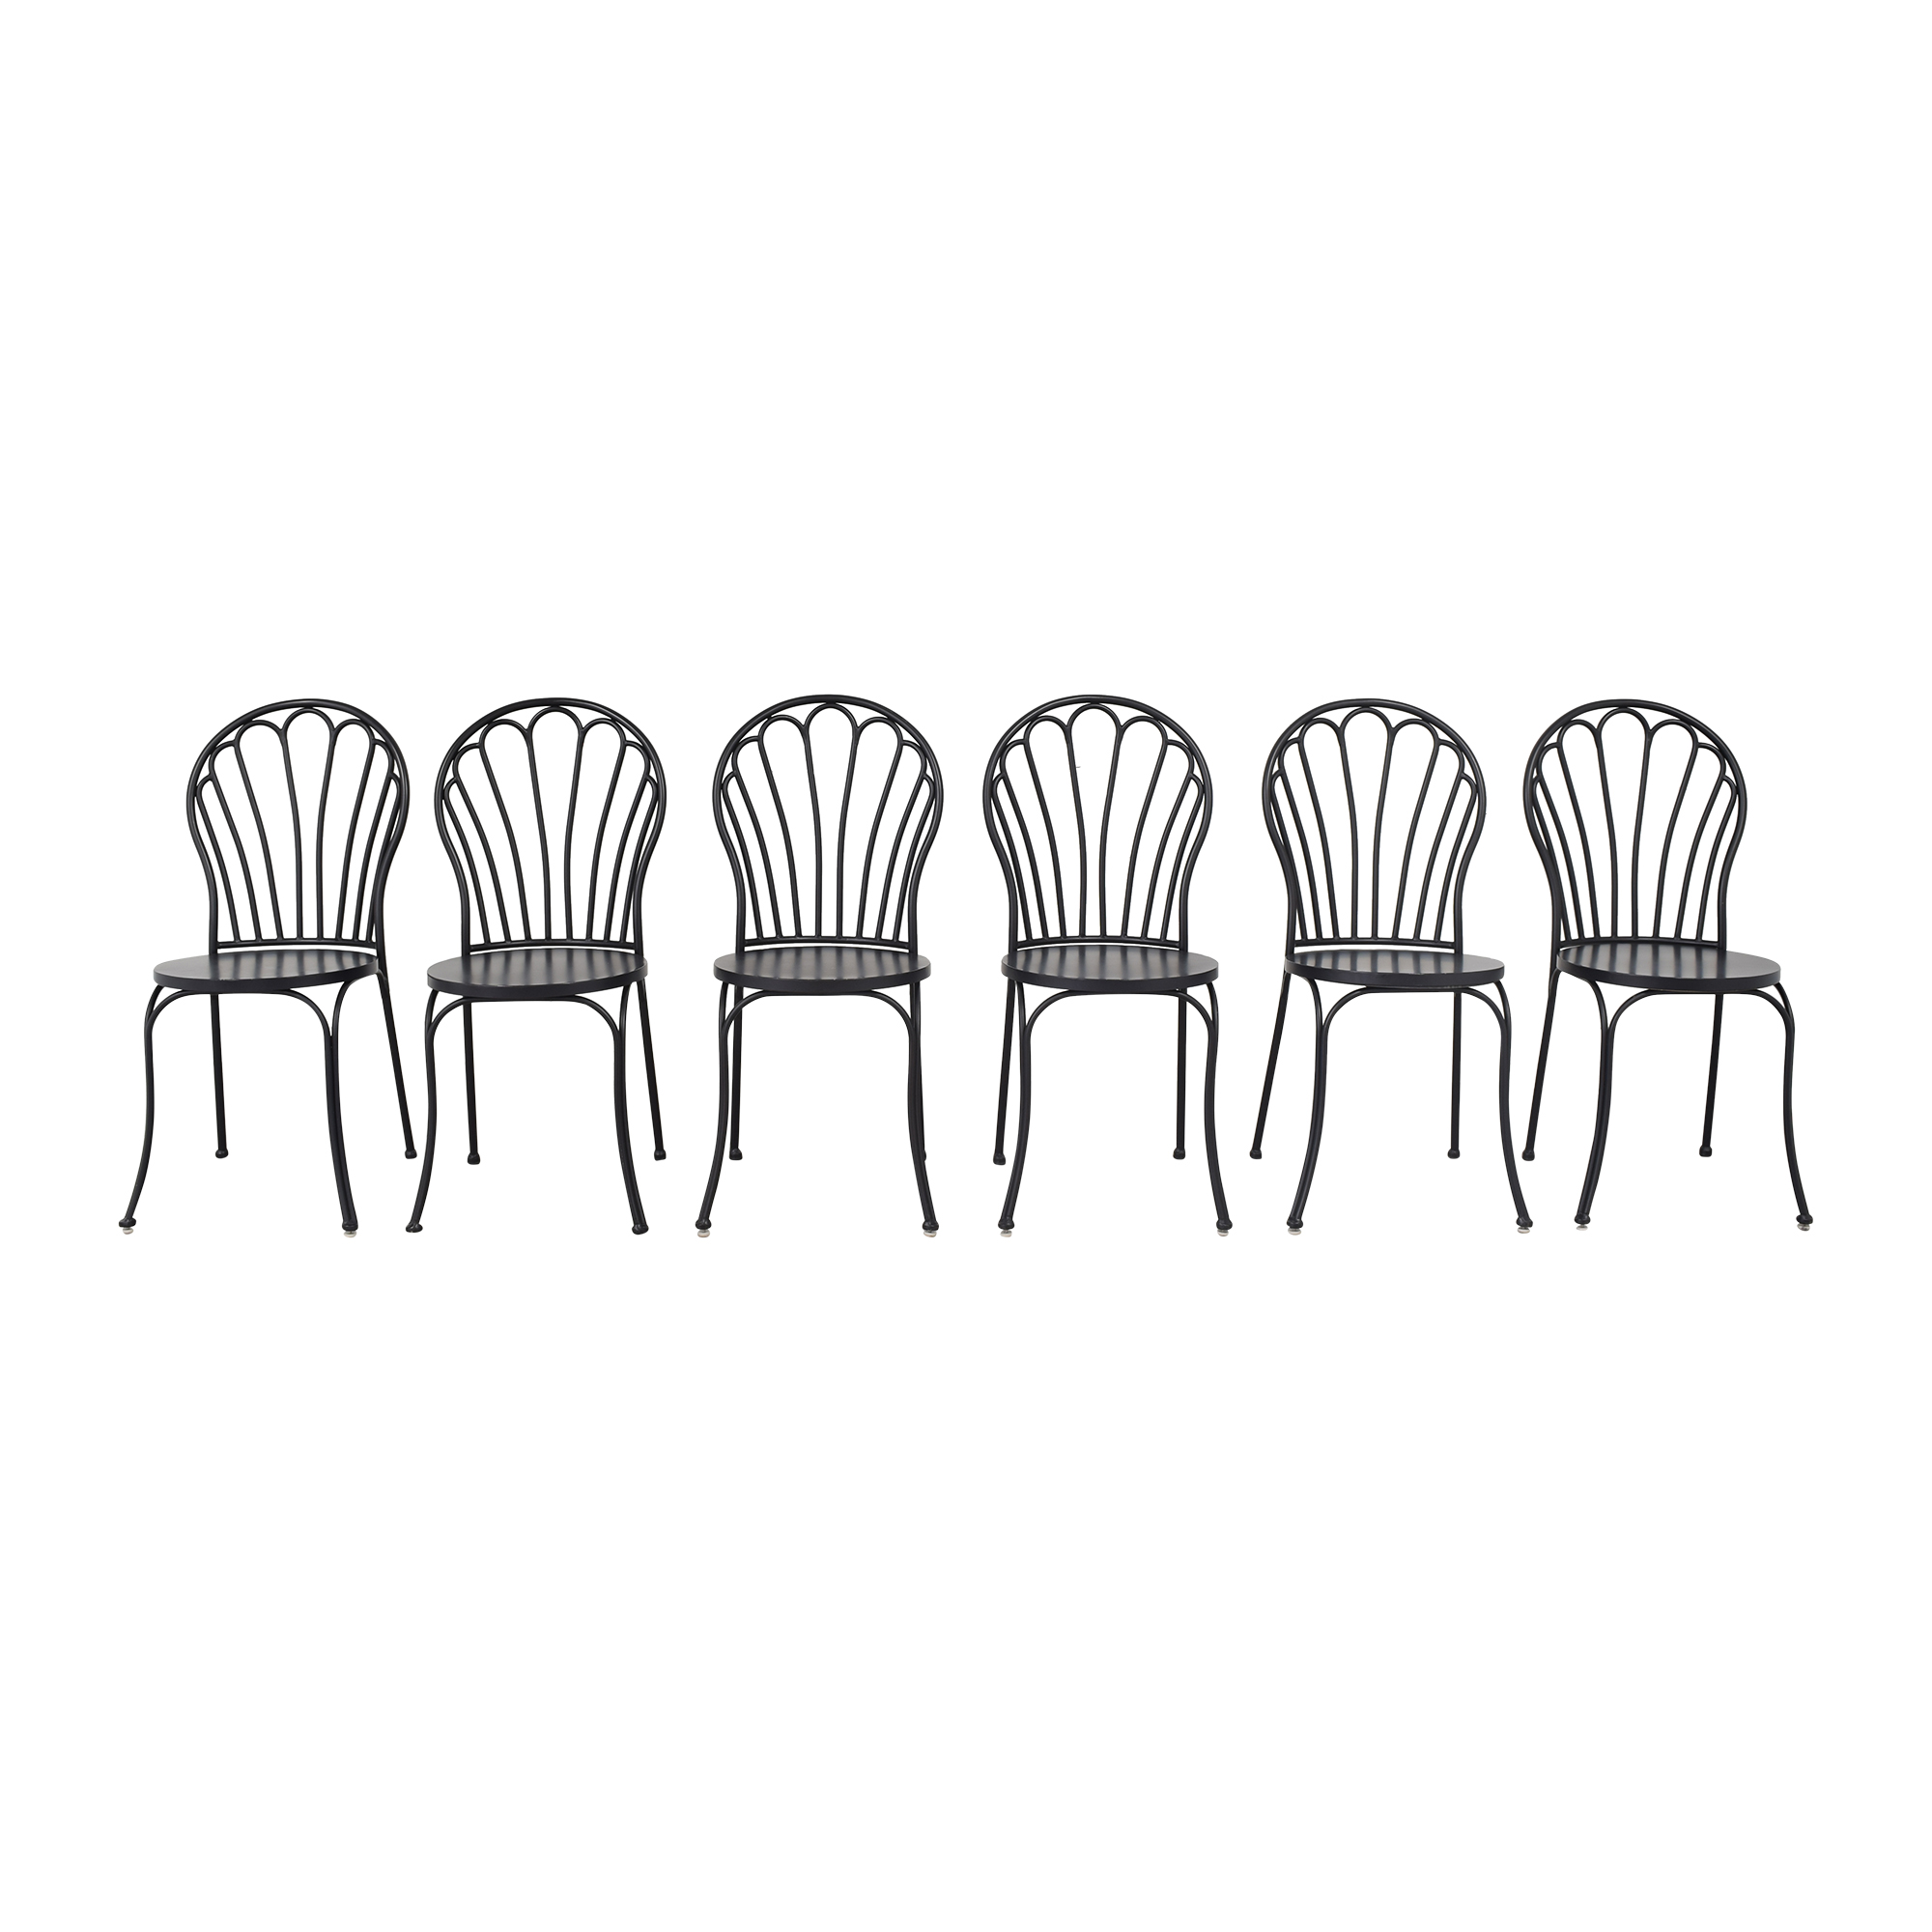 Magnolia Home Magnolia Home Dining Chairs